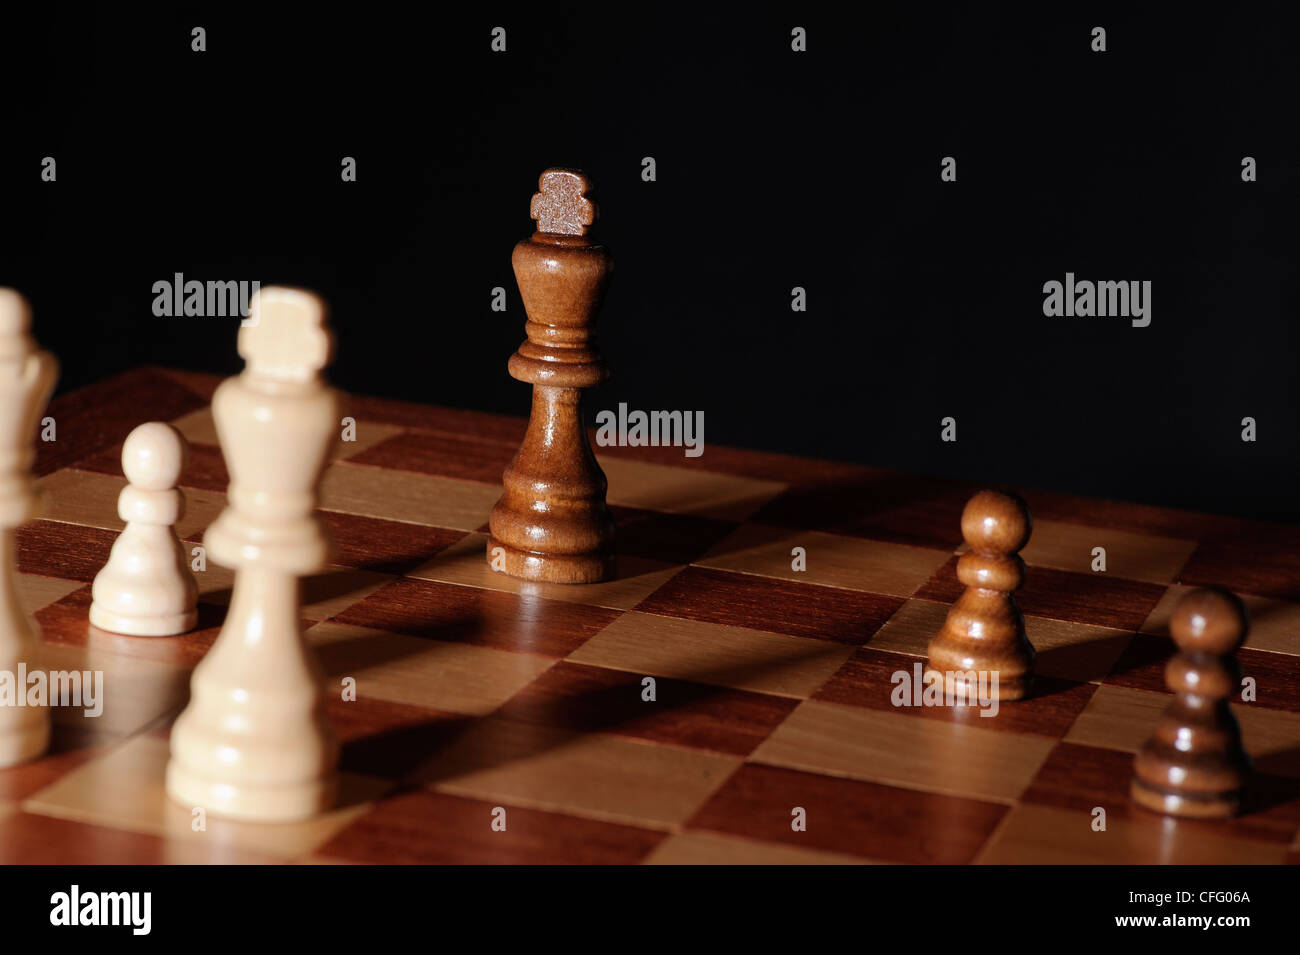 Chess endgame - king under pressure. Dramatic scene with long shadows and black background. - Stock Image